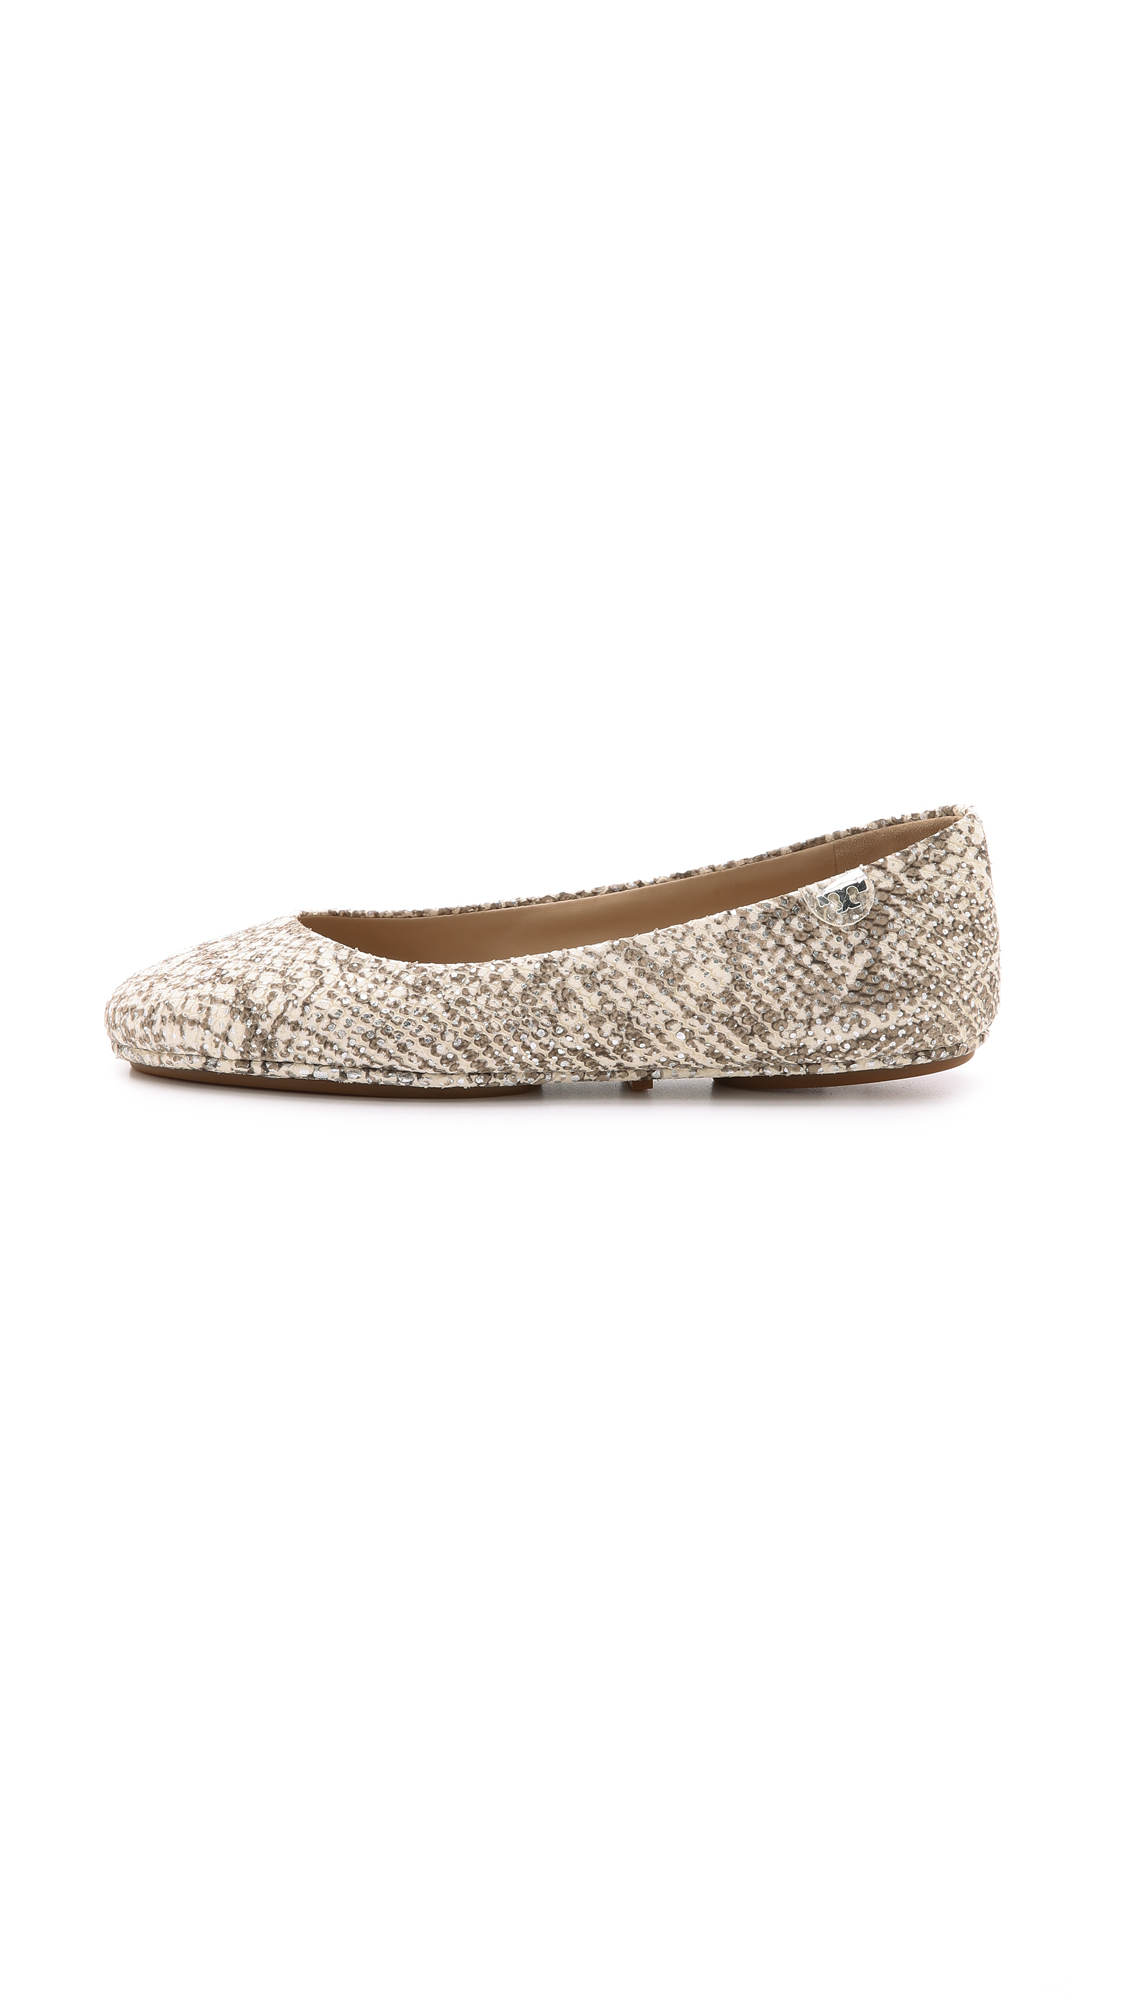 Tory Burch Minnie Travel Ballet Flats  Snake Print In Multicolor  Lyst